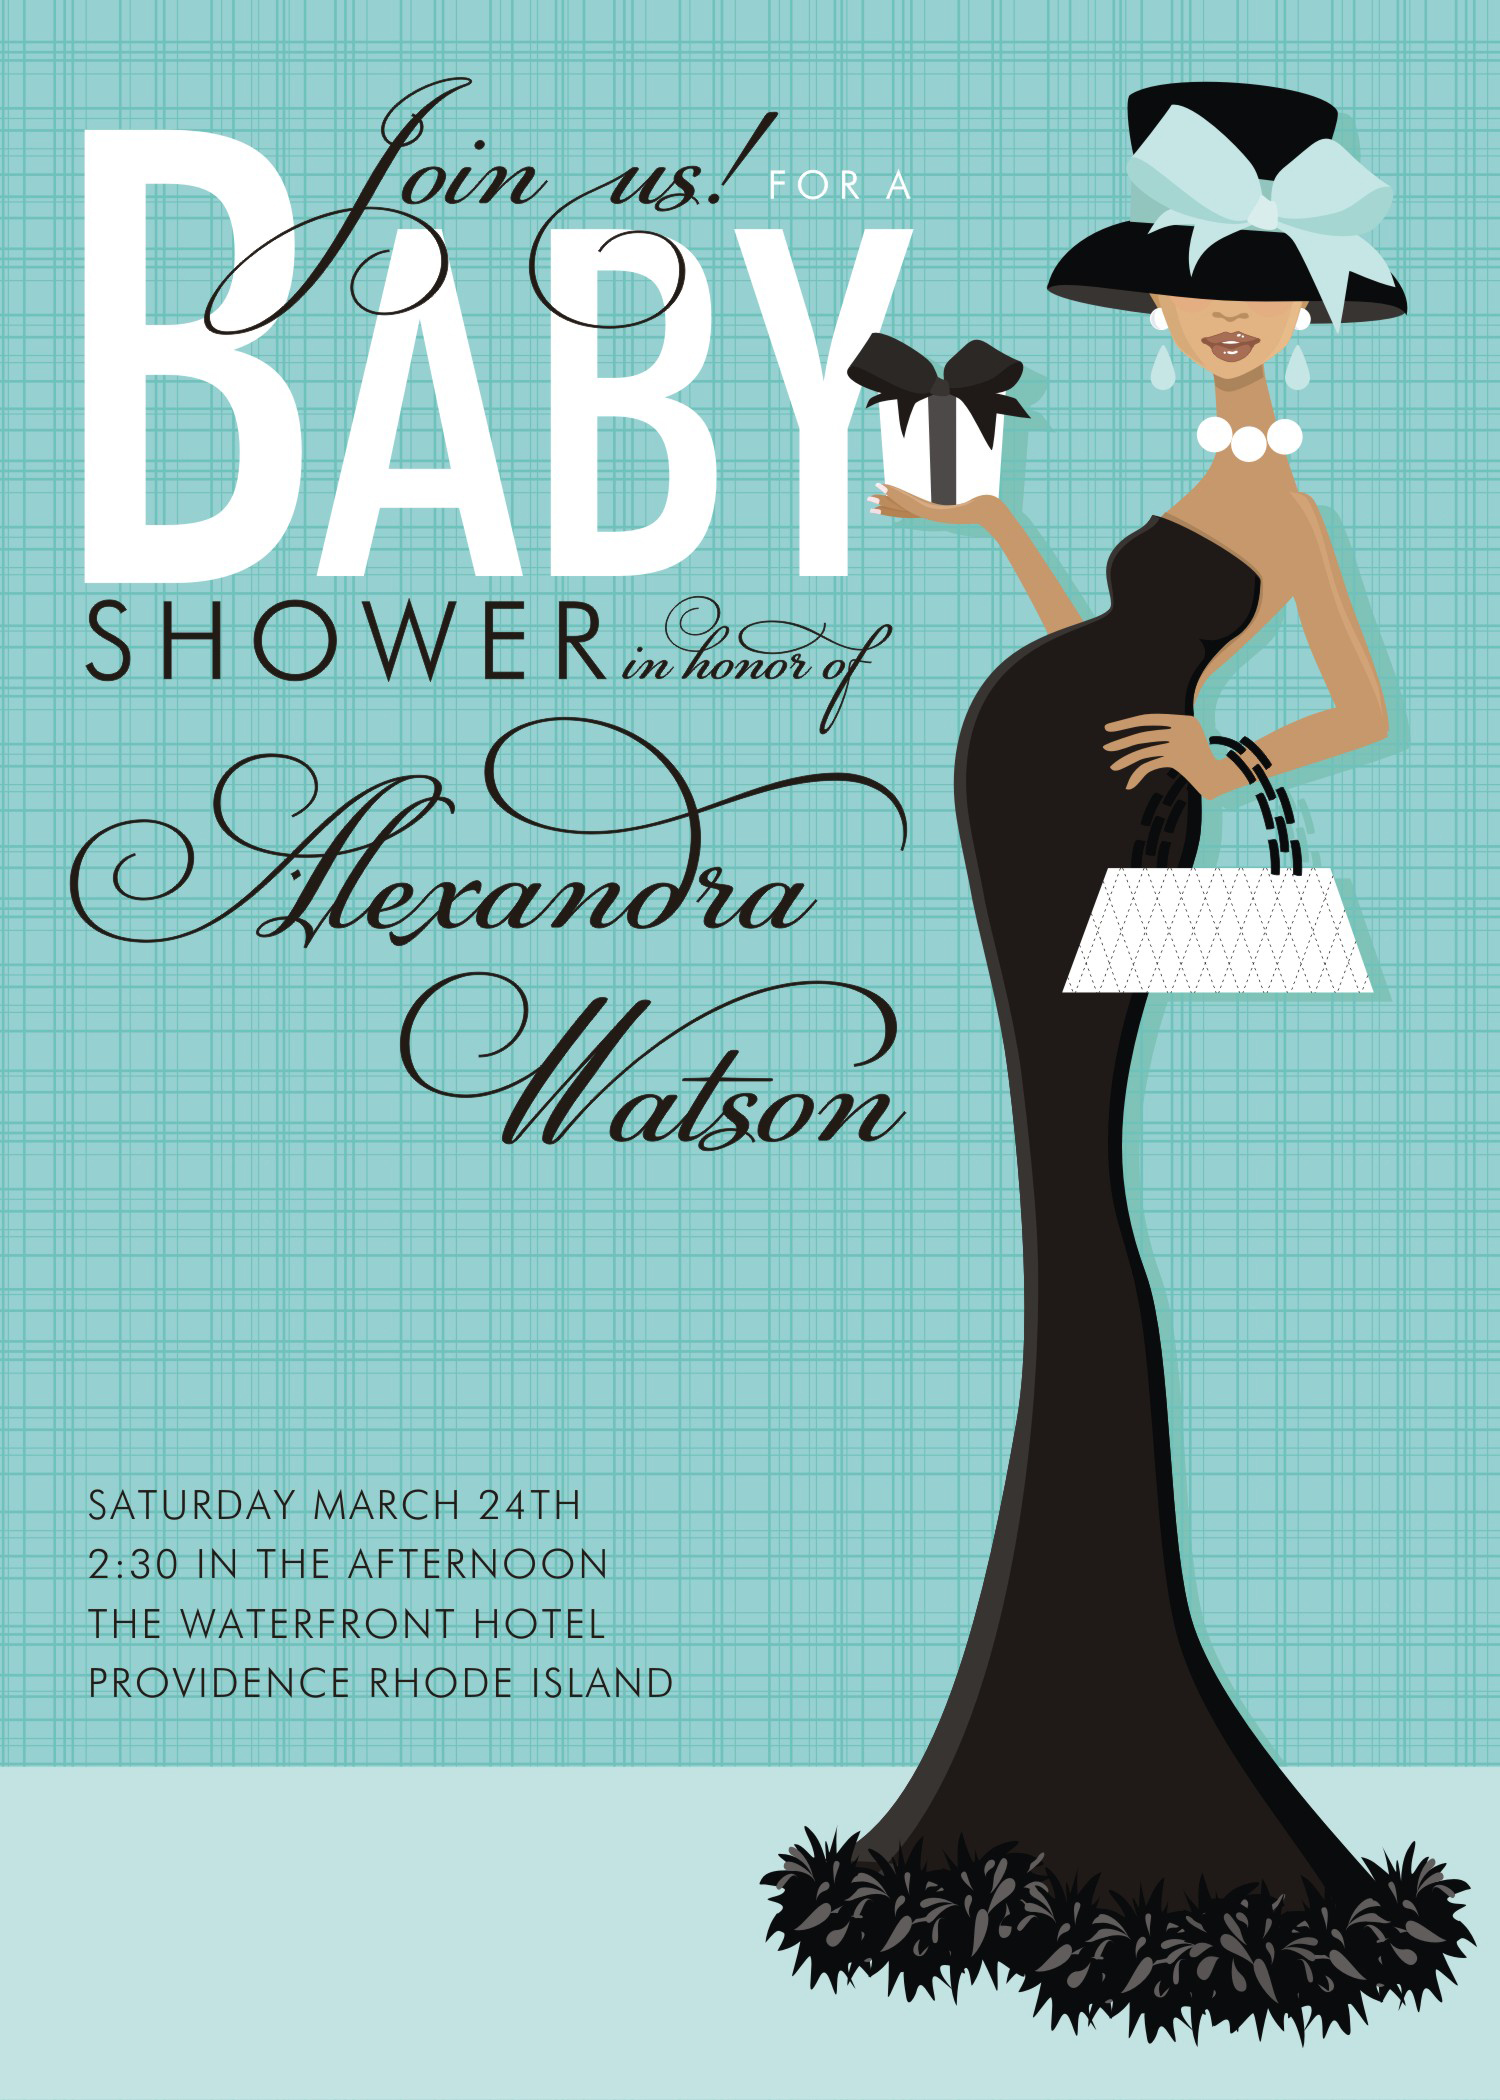 Free Baby Shower Invitations Online is an amazing ideas you had to choose for invitation design